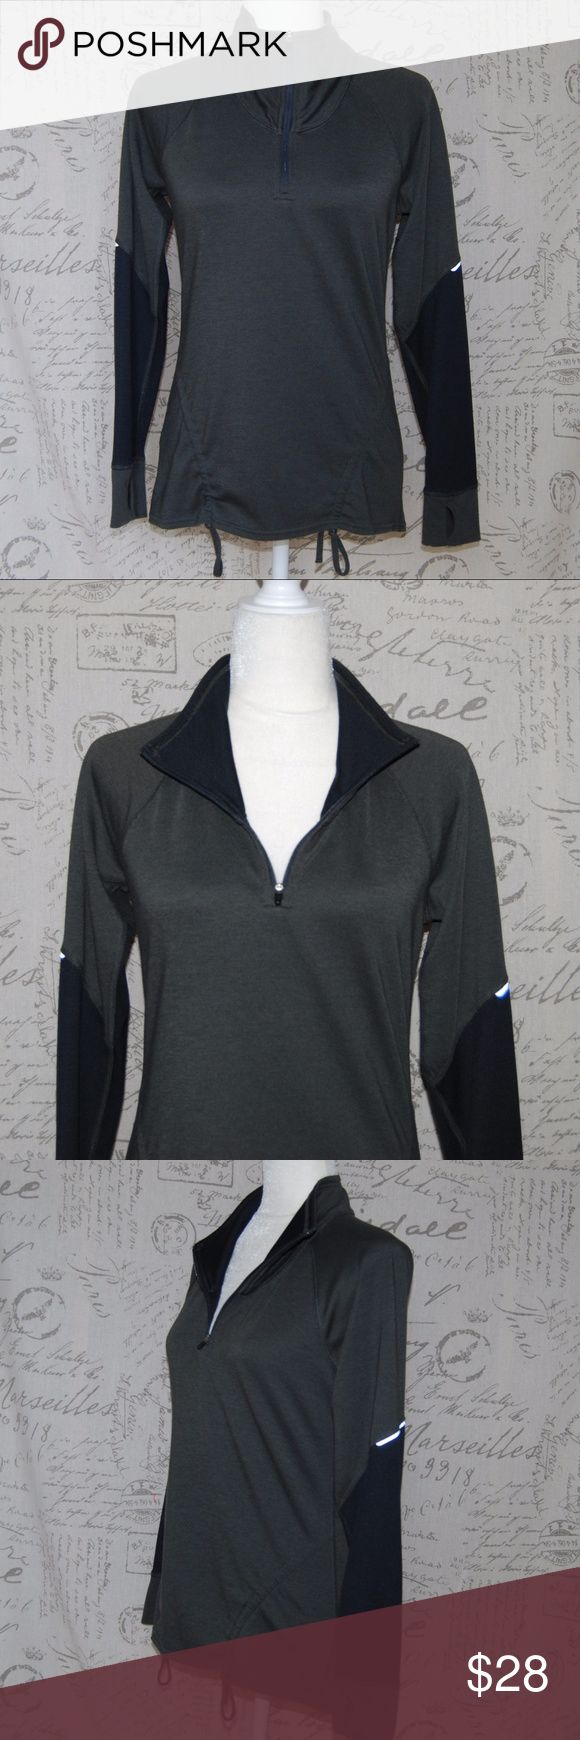 """Lucy Athletic Gray 1/2 Zip Pullover Sweater Small Lucy Athletic Women's Gray 1/2 Zip Pullover Sweater Small Thumbhole sleeves Drawstring bottom front Reflective strip on arm Piling from normal wash and wear.  Measurements taken with garment flat on table. Armpit to armpit: 17"""" Sleeves: 27.5"""" Length: 23.5"""" Lucy Sweaters"""